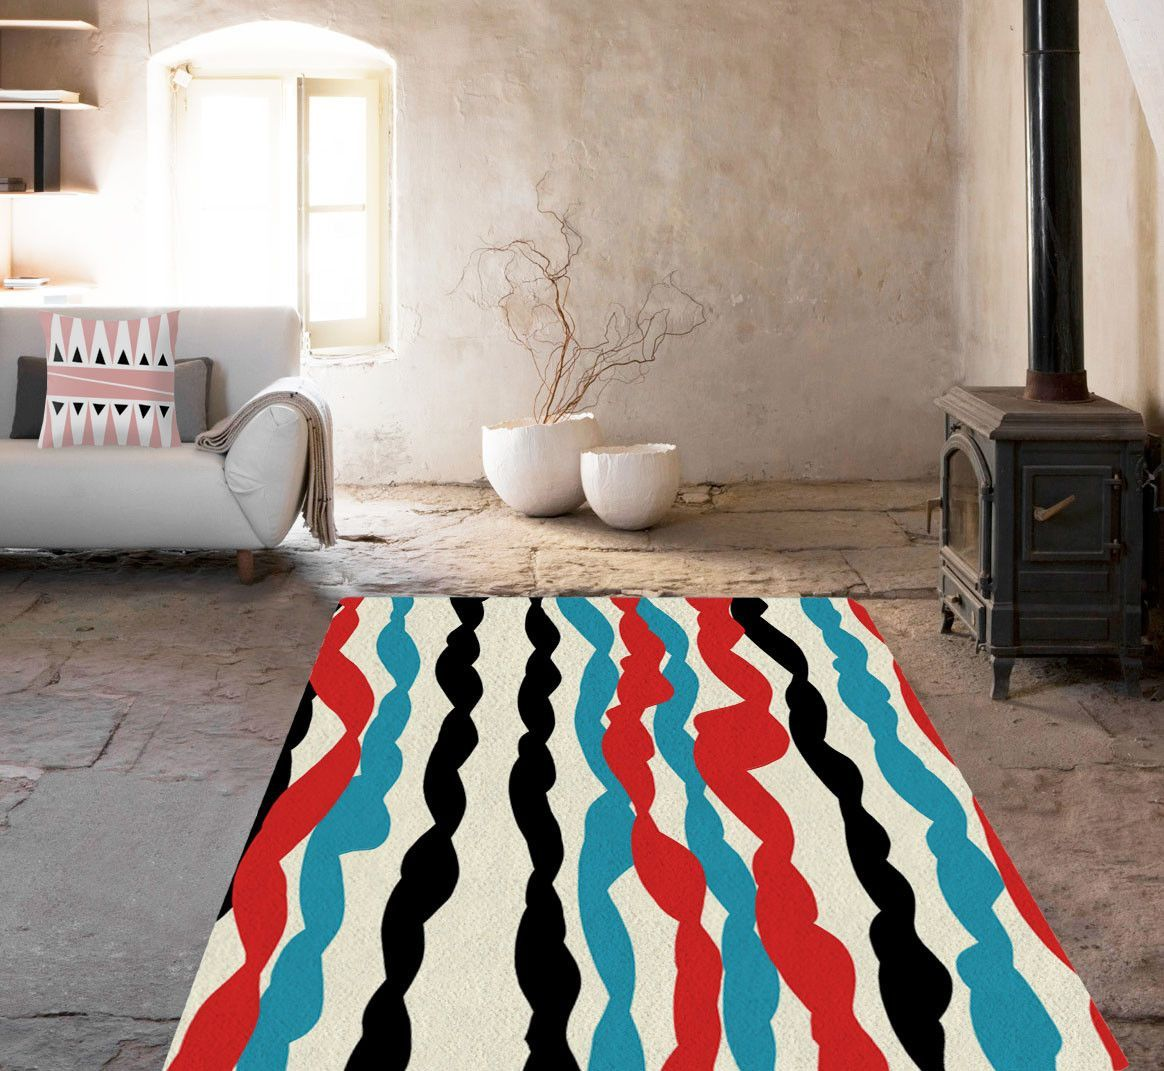 Lines Rugs - Affordable area rugs - Dorm rugs - 5x8 rug - Designer rug-TheGretest